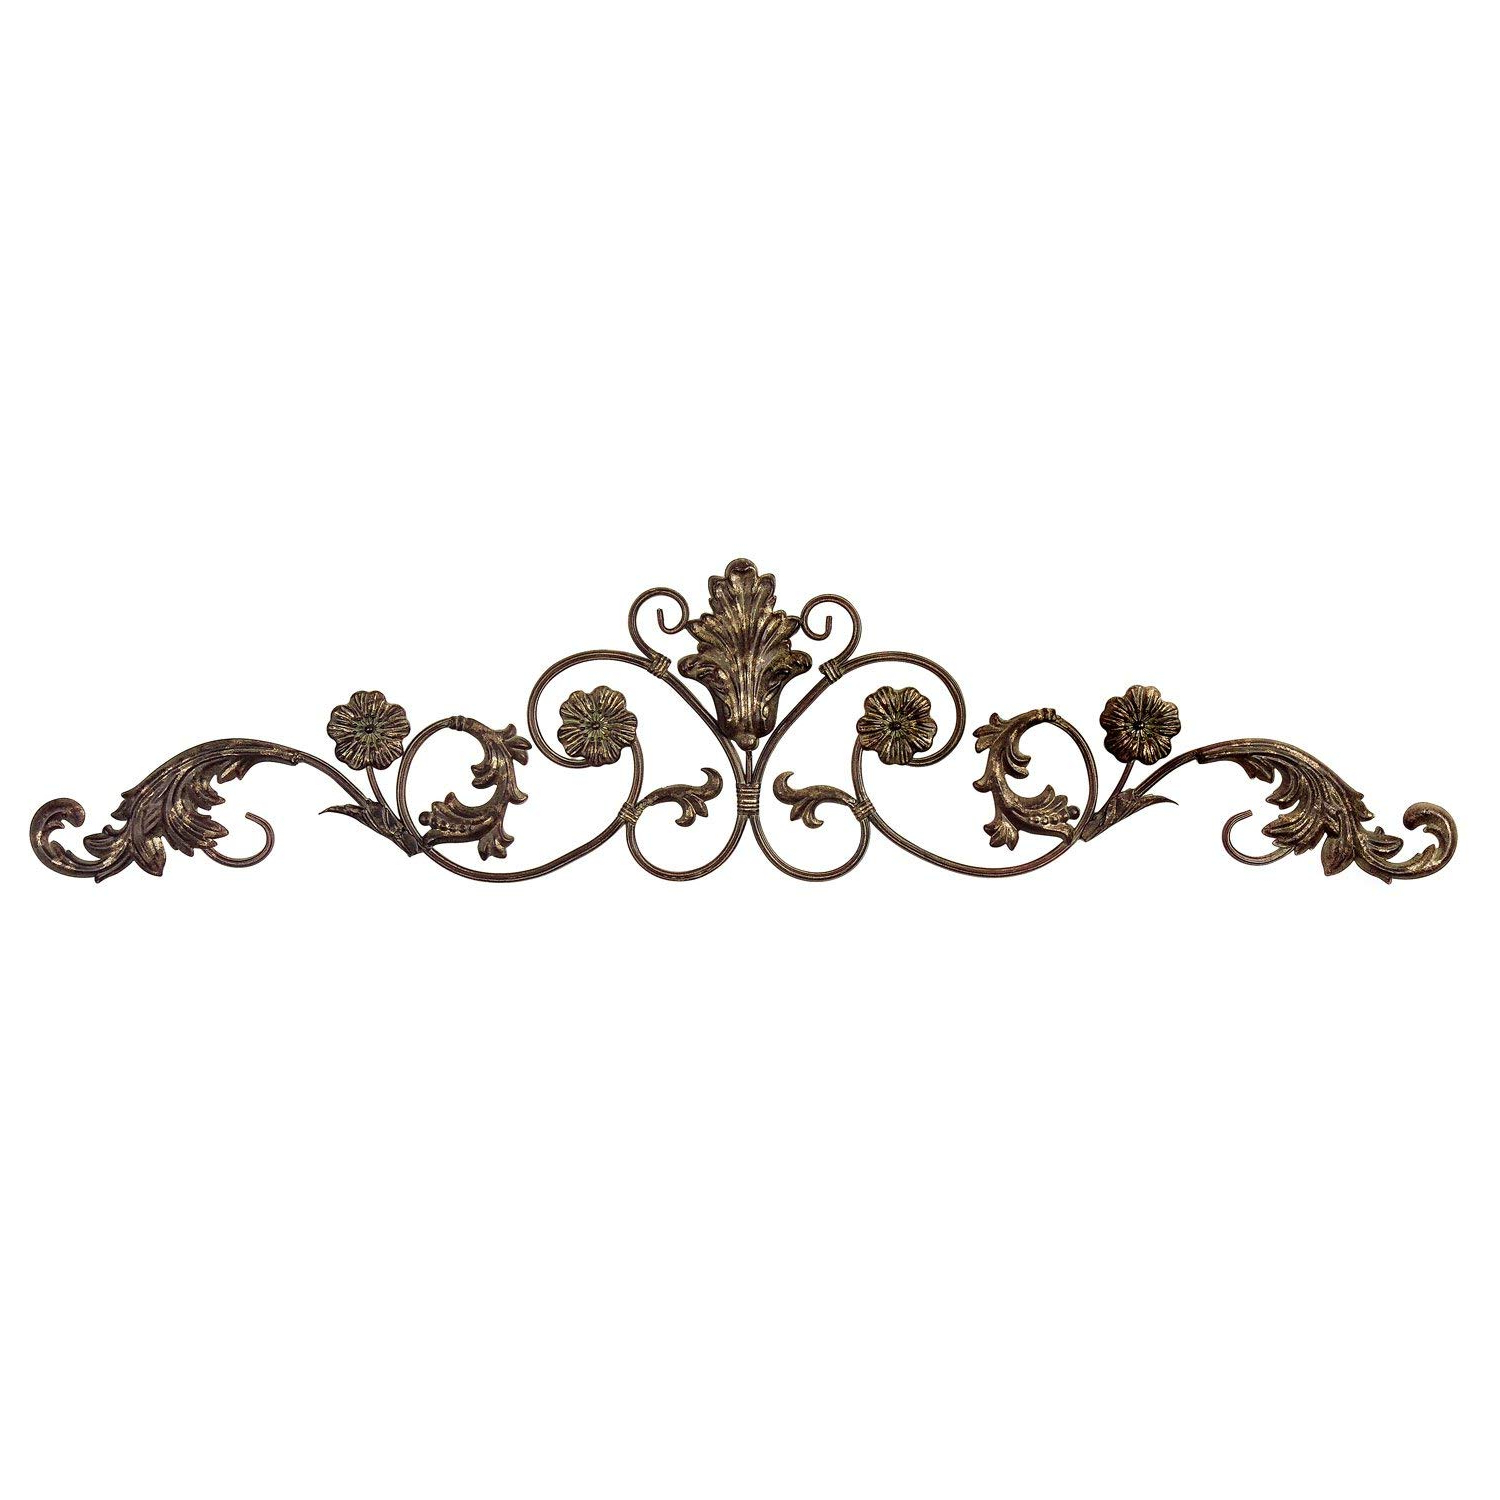 Most Recent Amazon: Imax Allegro Wall Decor Hanging In Gold Metallic Finish Within Belle Circular Scroll Wall Decor (View 14 of 20)